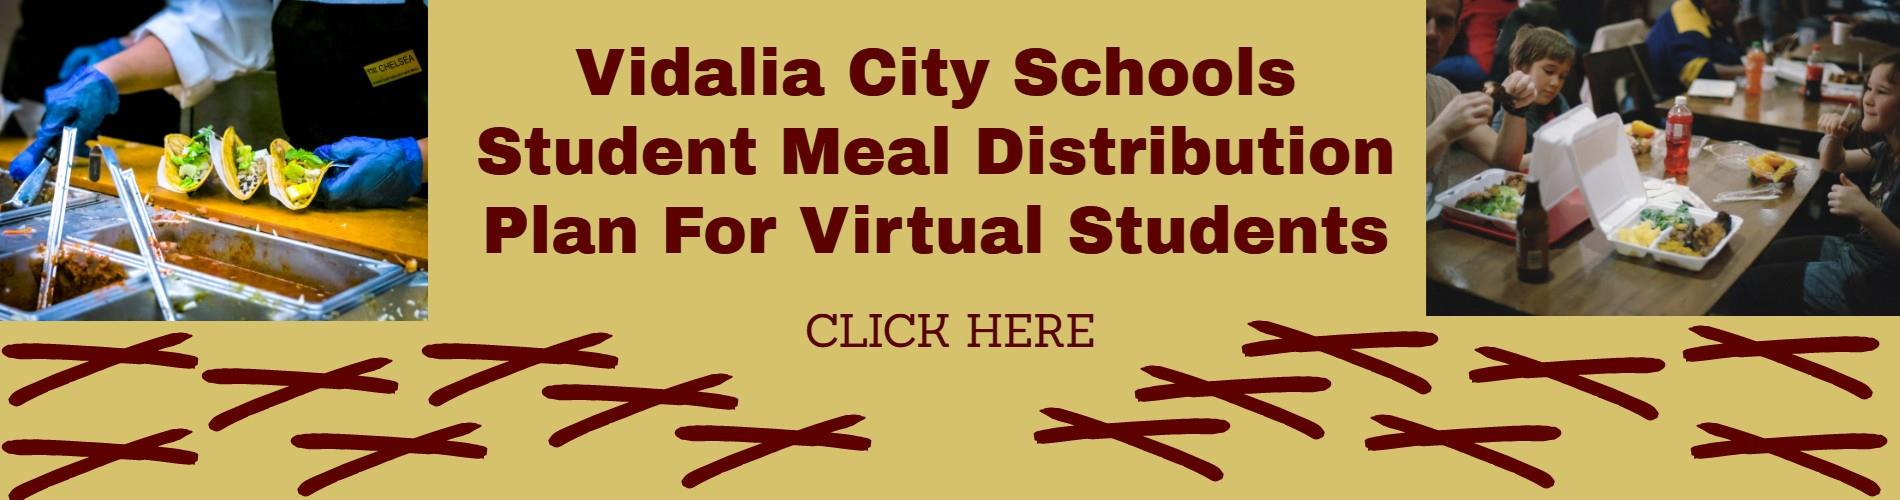 Nutrition Information for Virtual Students with Pics of School Lunches